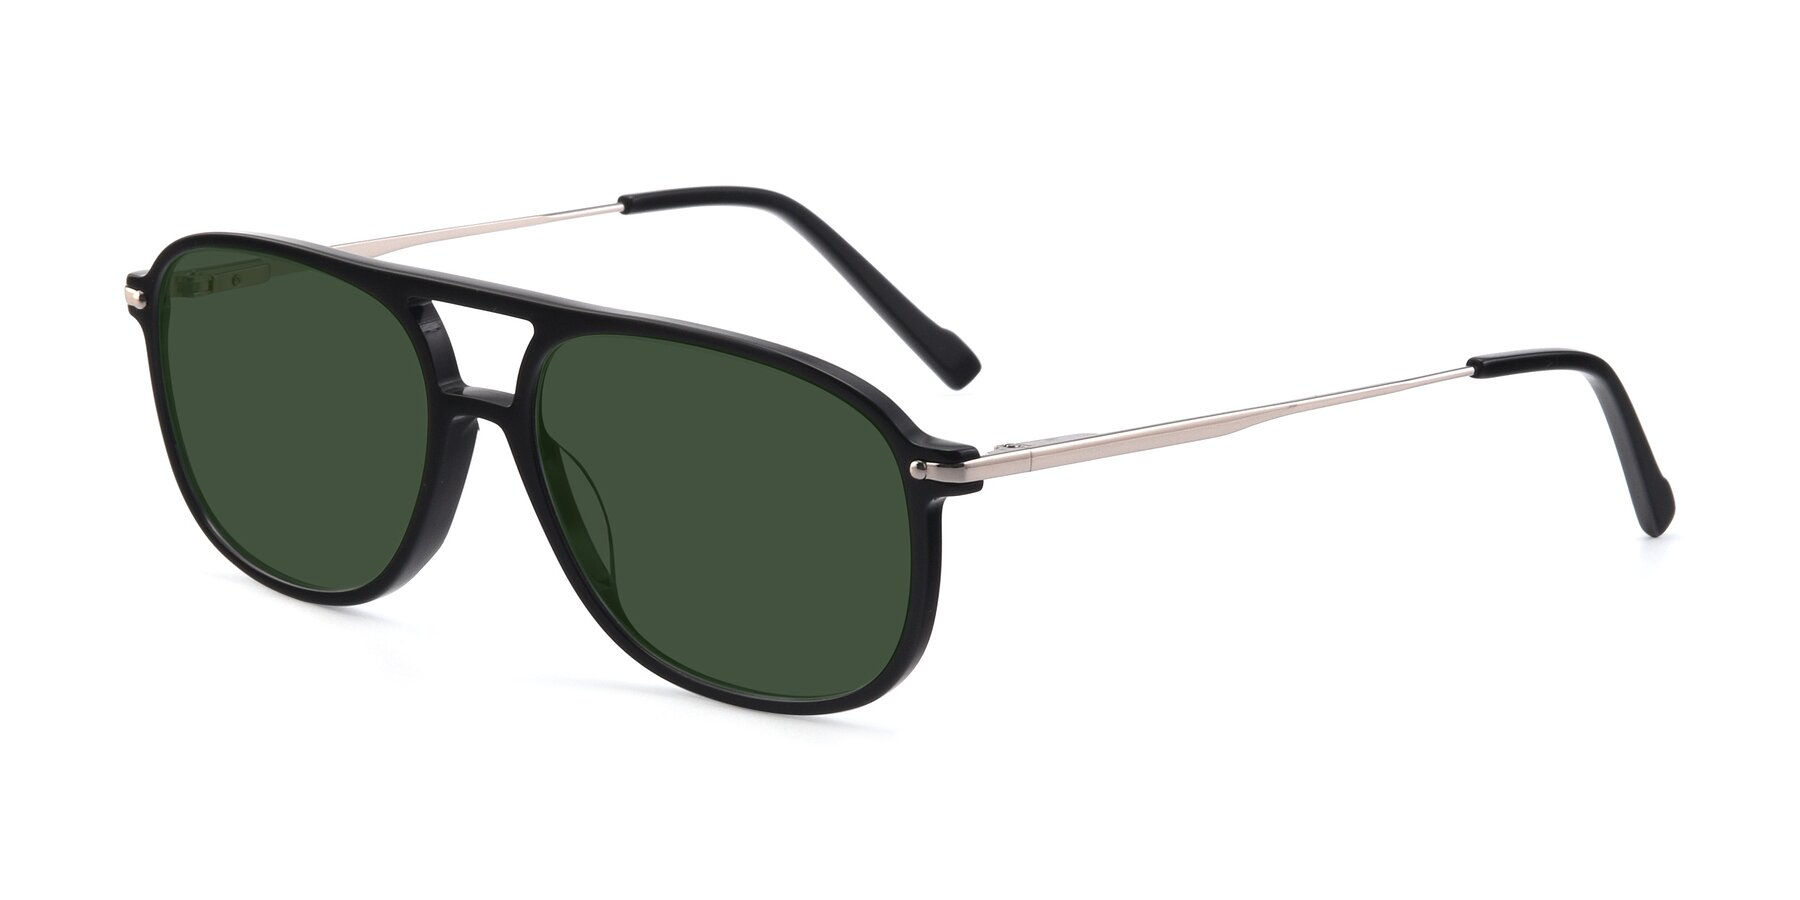 Angle of 17580 in Black with Green Tinted Lenses